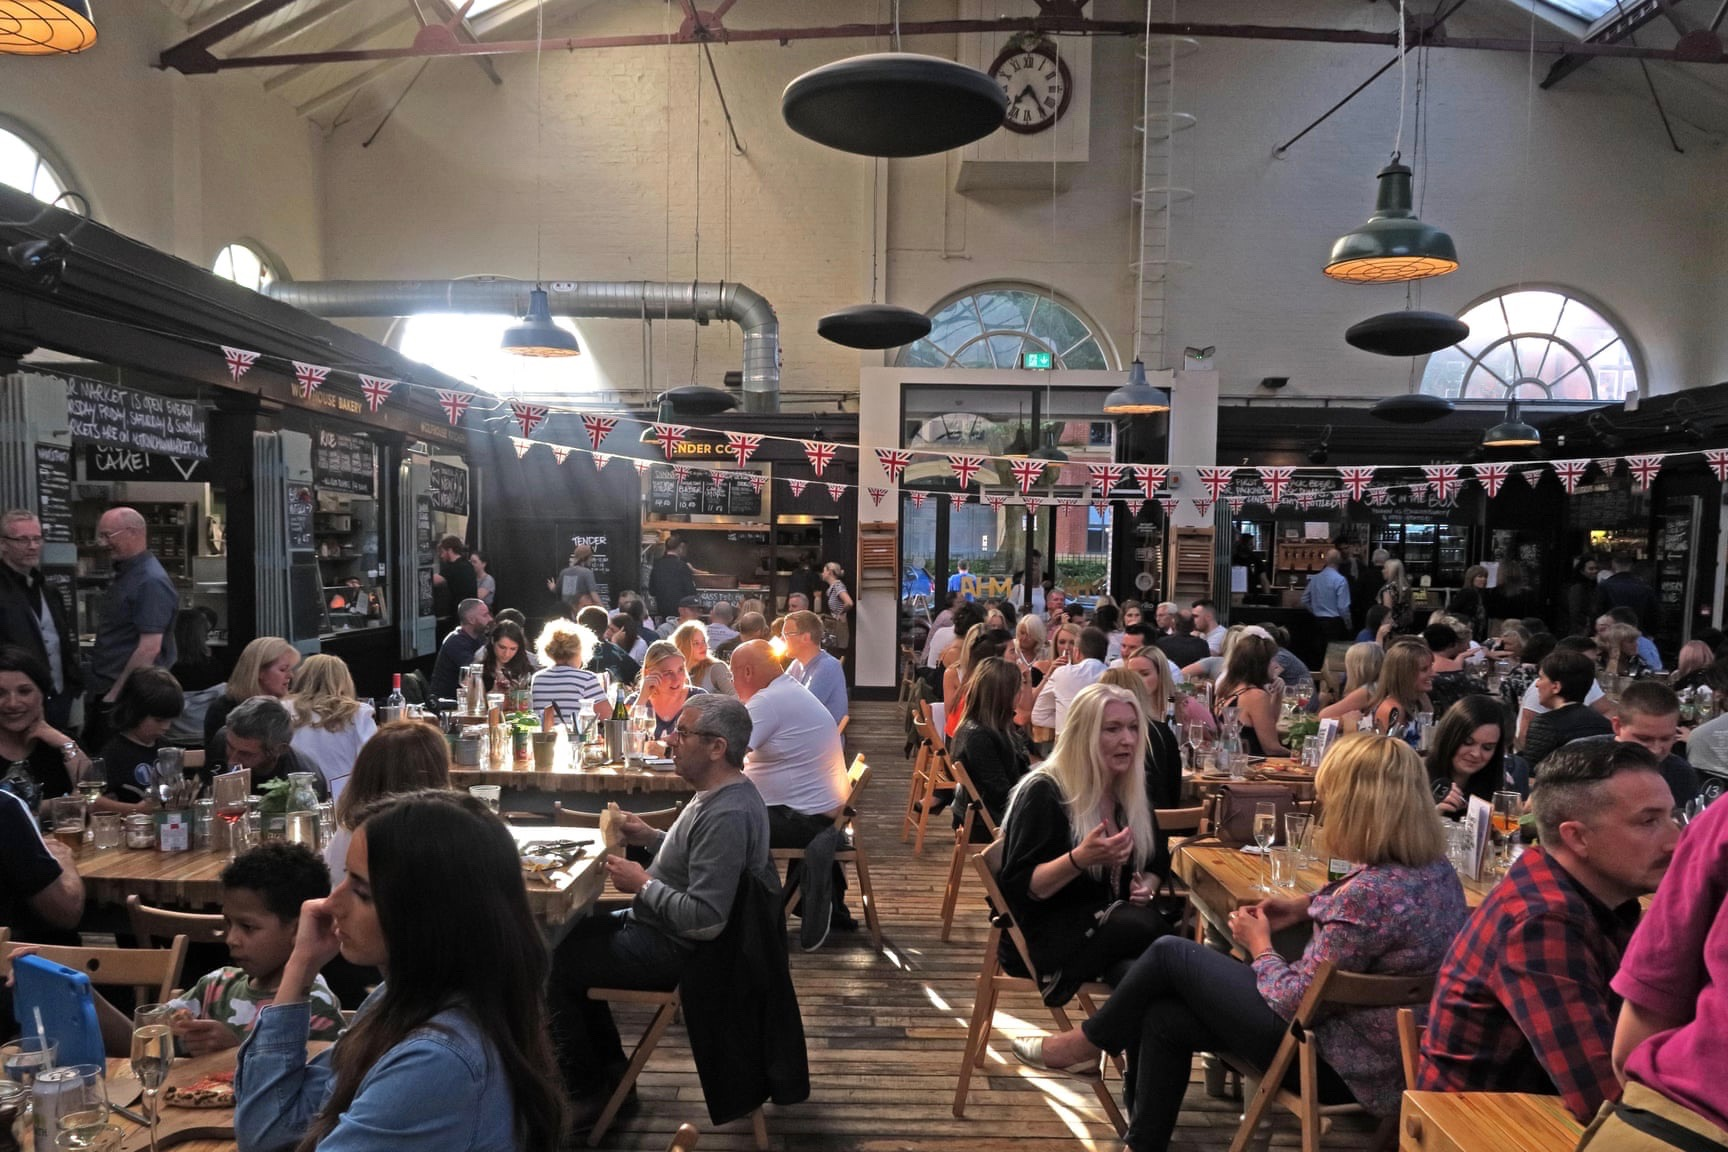 Trafford council partnered with a private investor to turn Altrincham's listed market hall into a trendy dining space. Photograph: Tony Smith/Alamy Stock Photo